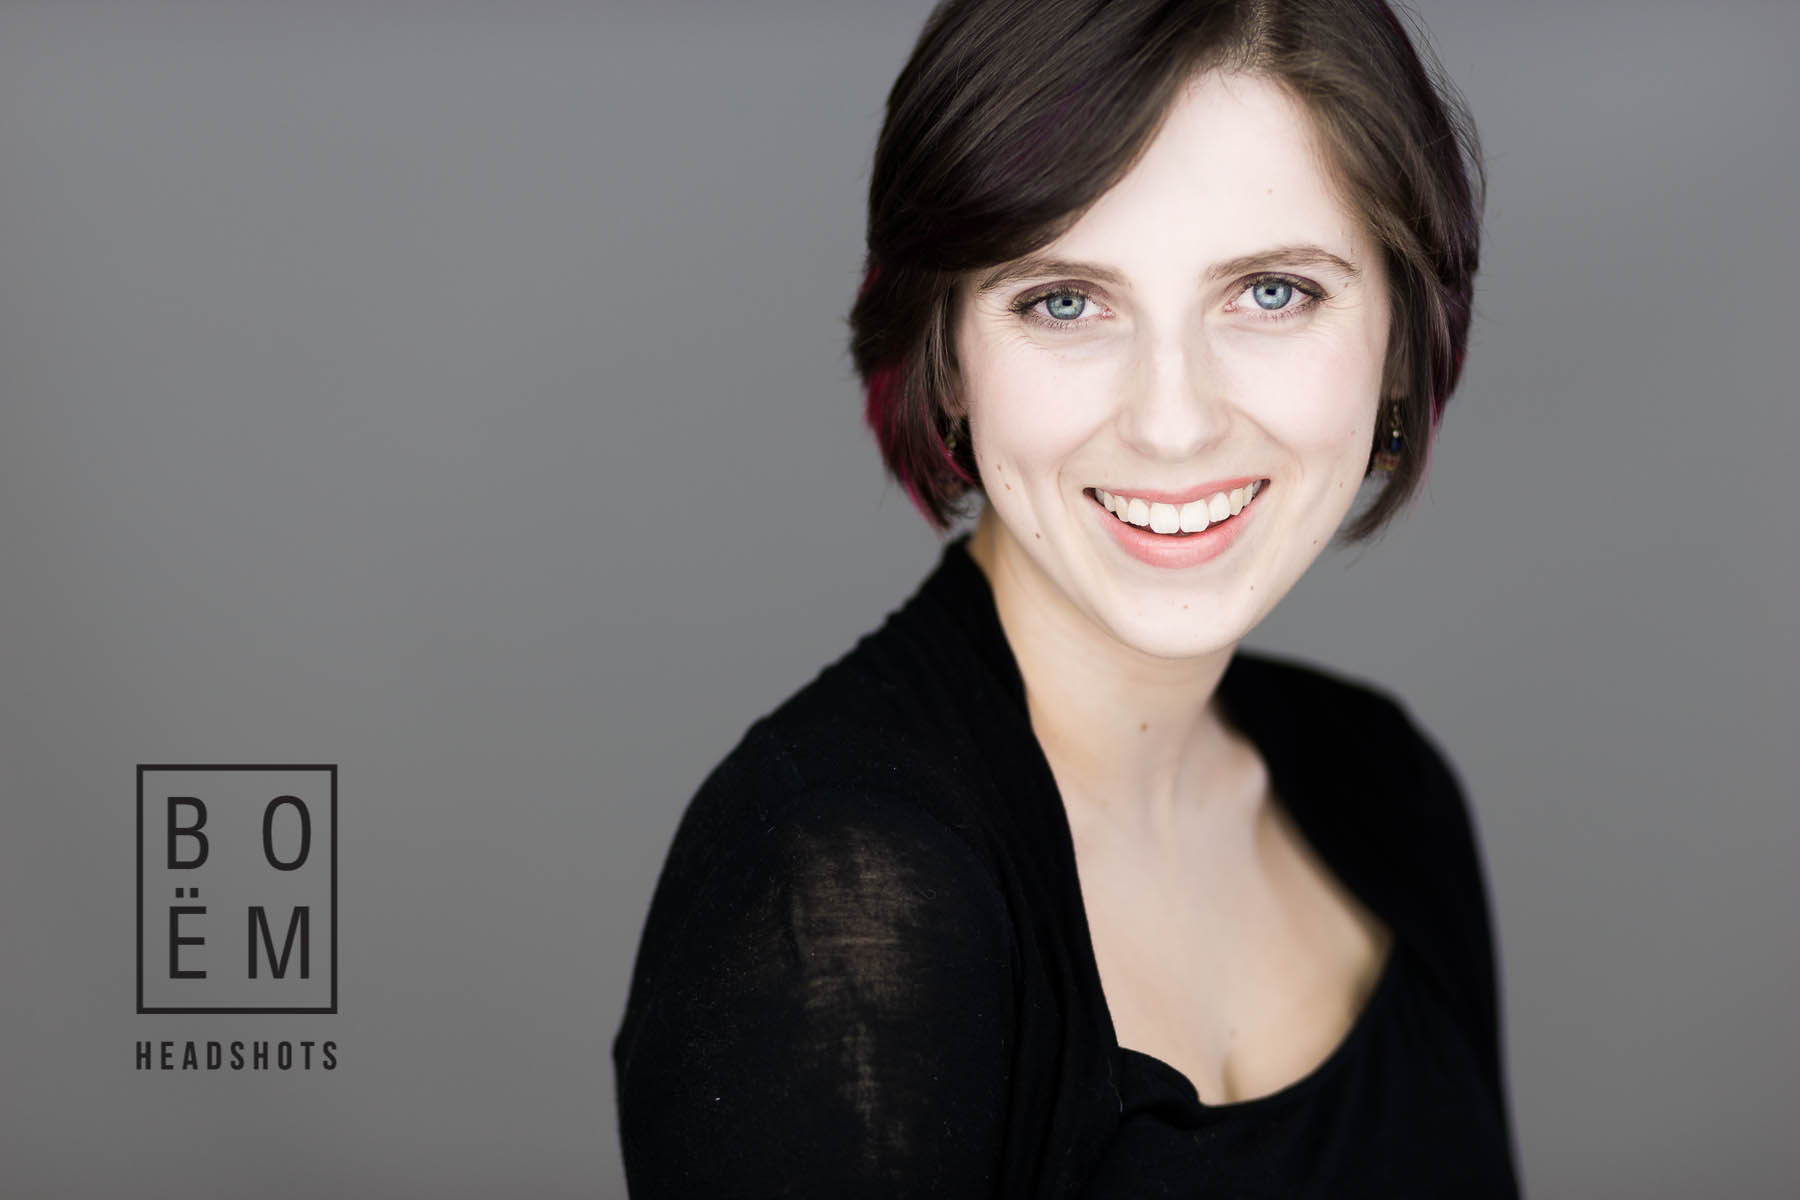 A professional headshot session for Rachel, a musician here in Adelaide by Andre Goosen for Boem Headshots, the premier headshot photographer